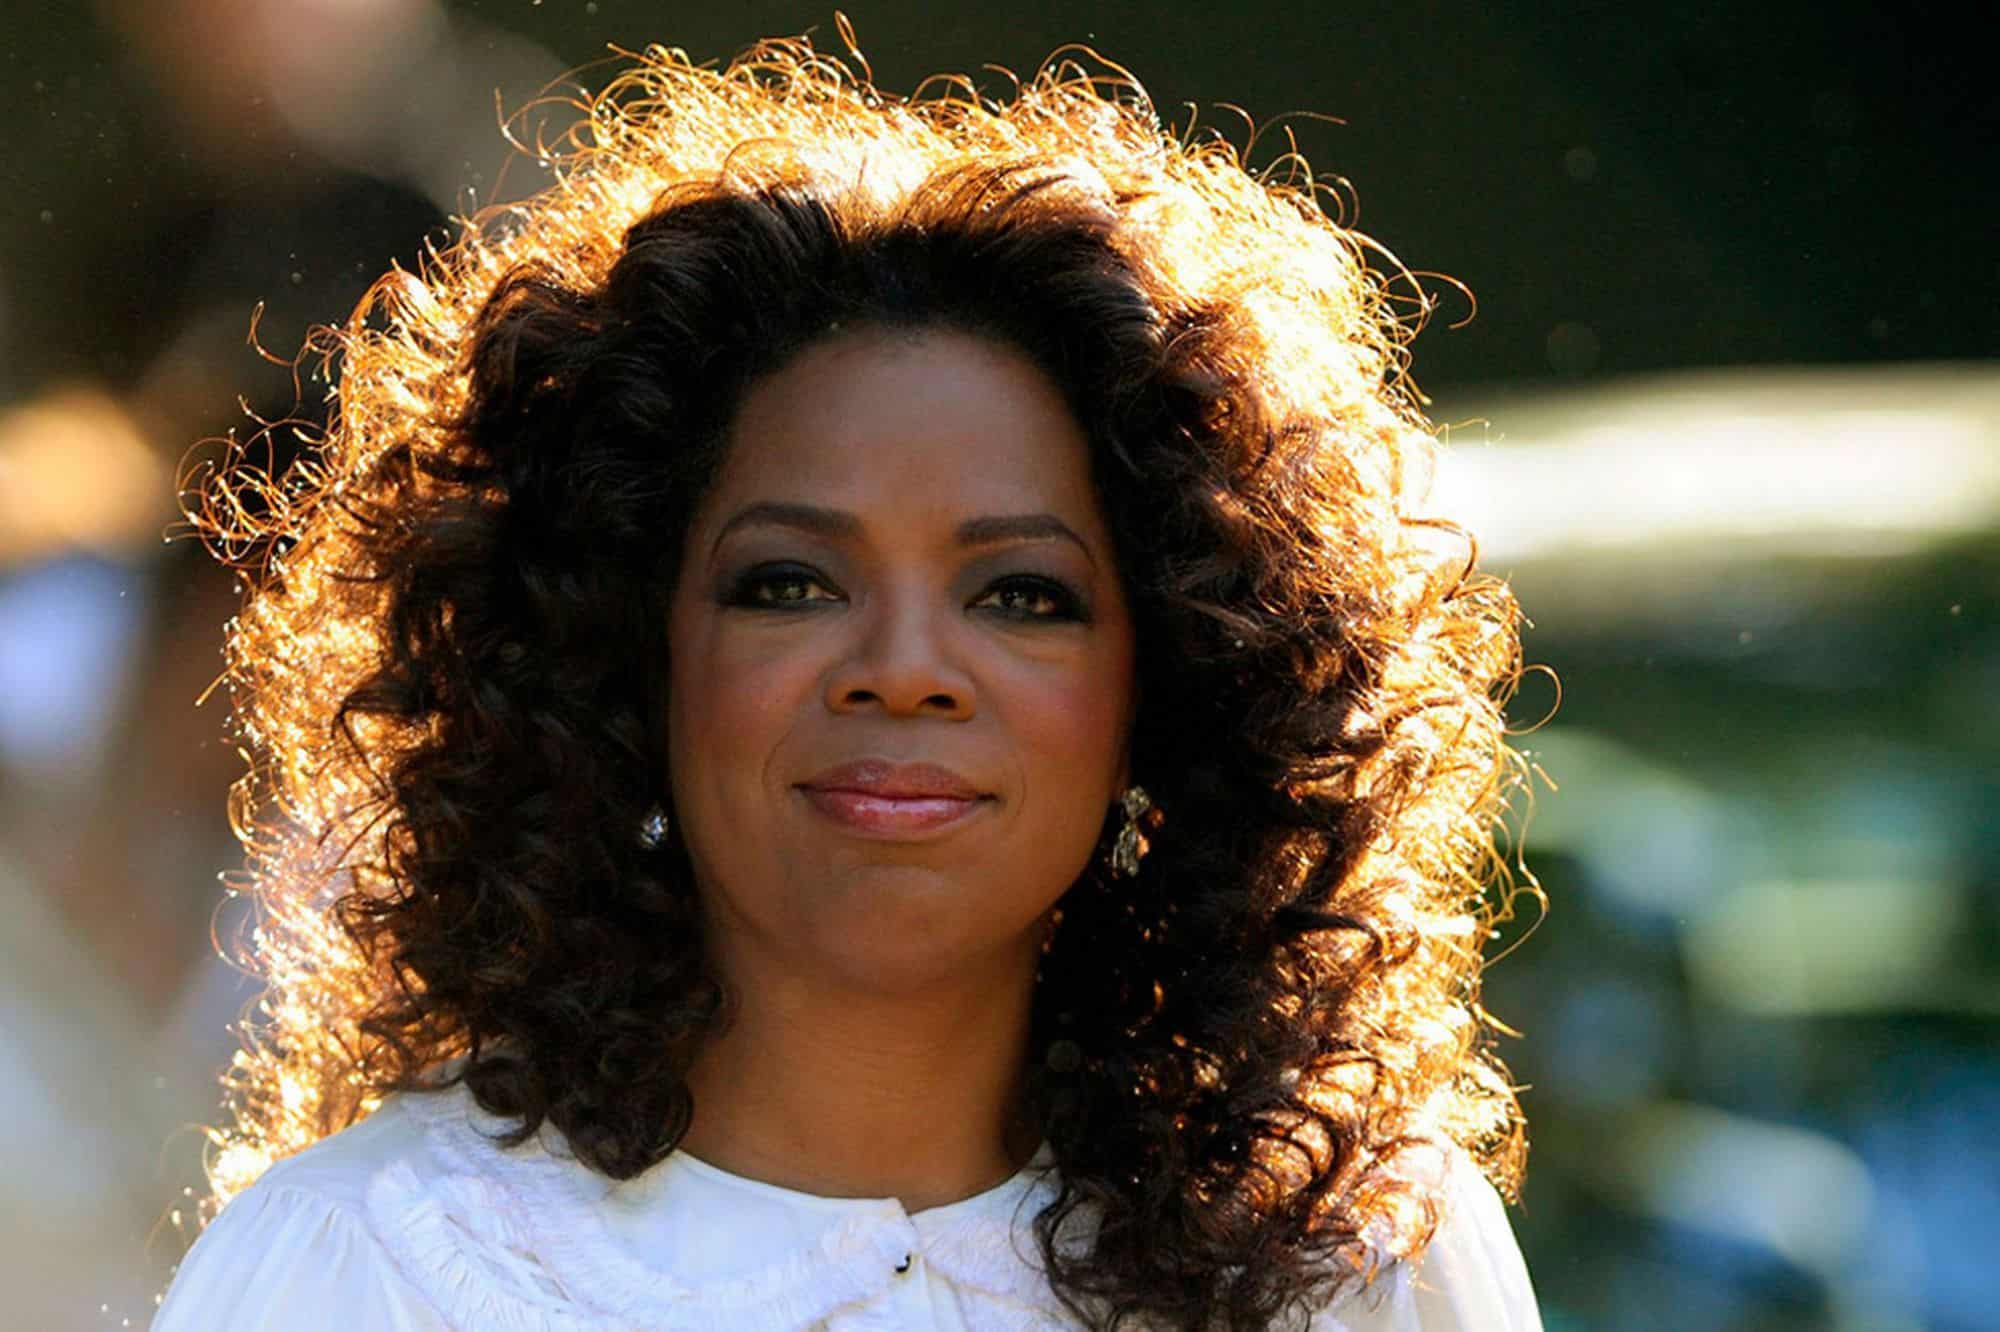 Surprising Past Jobs - Oprah Winfrey